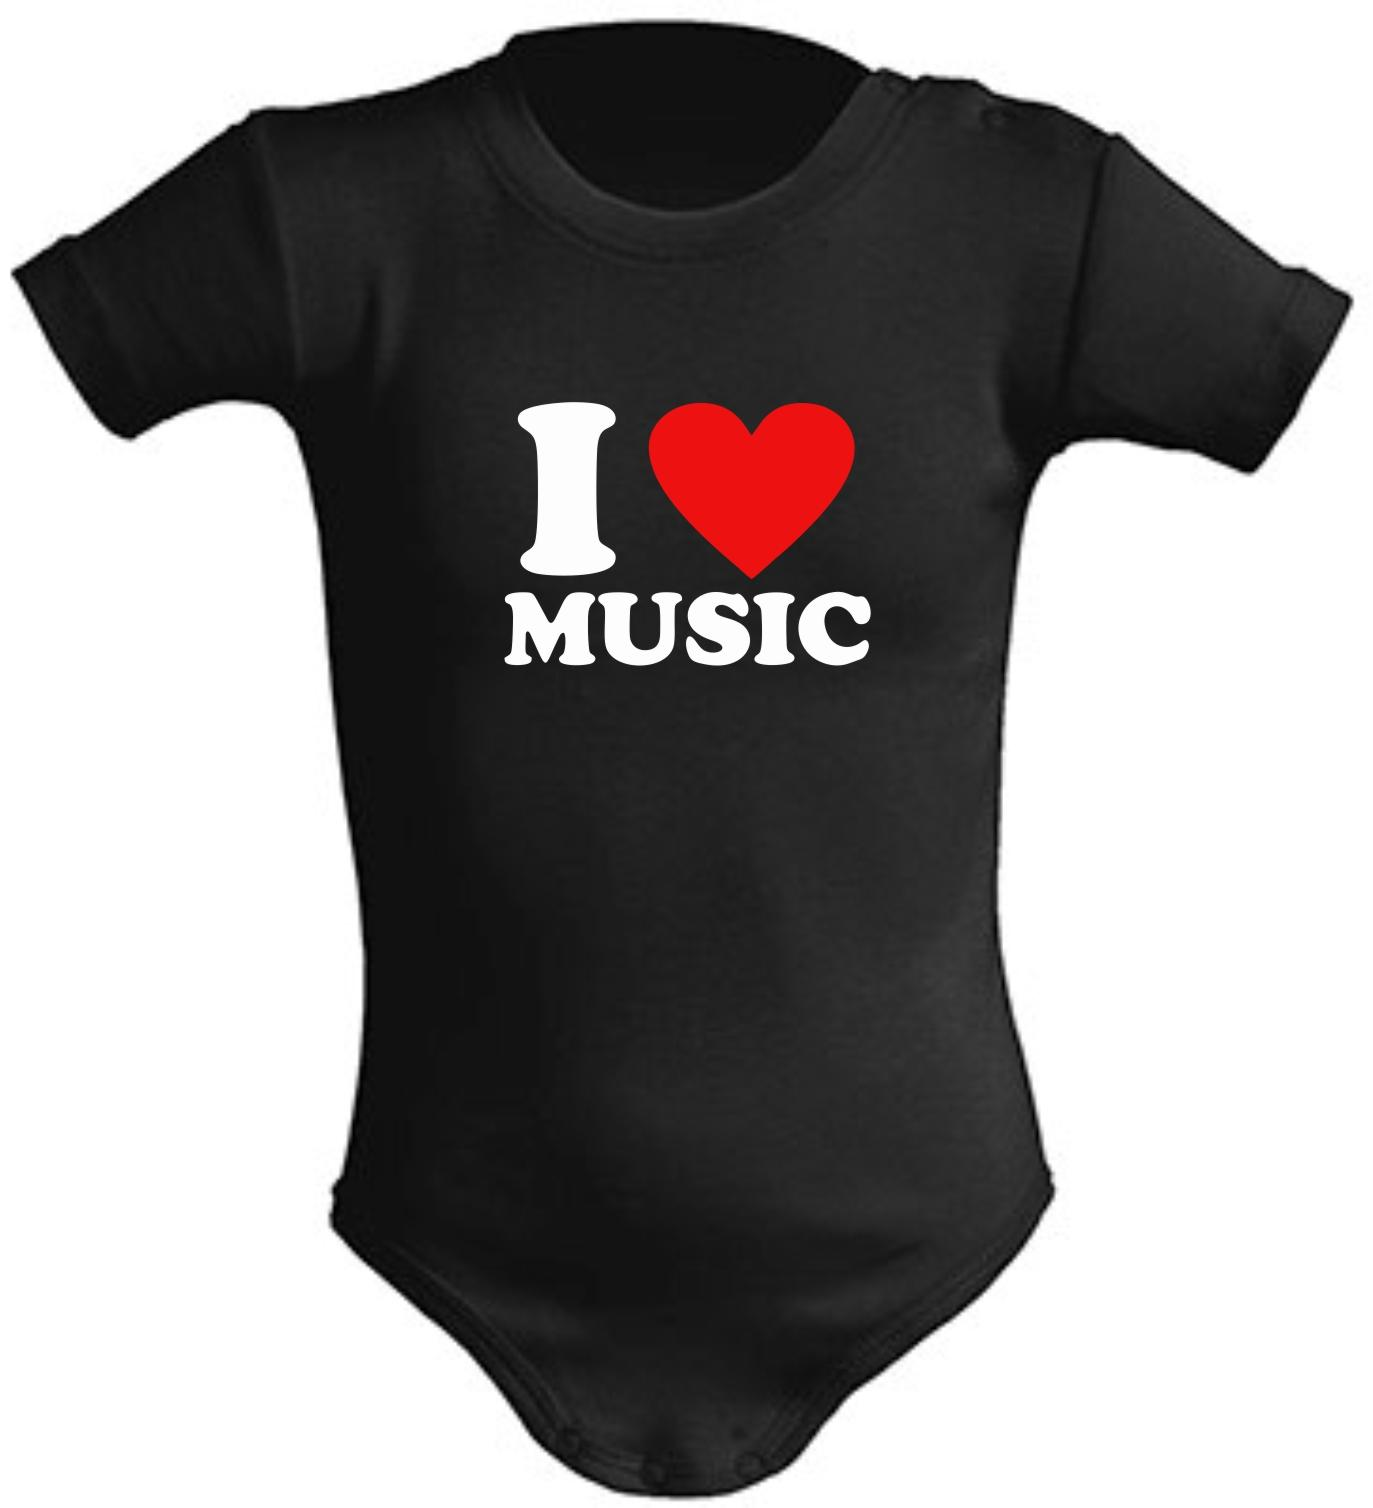 BODY DE BEBE I LOVE MUSIC